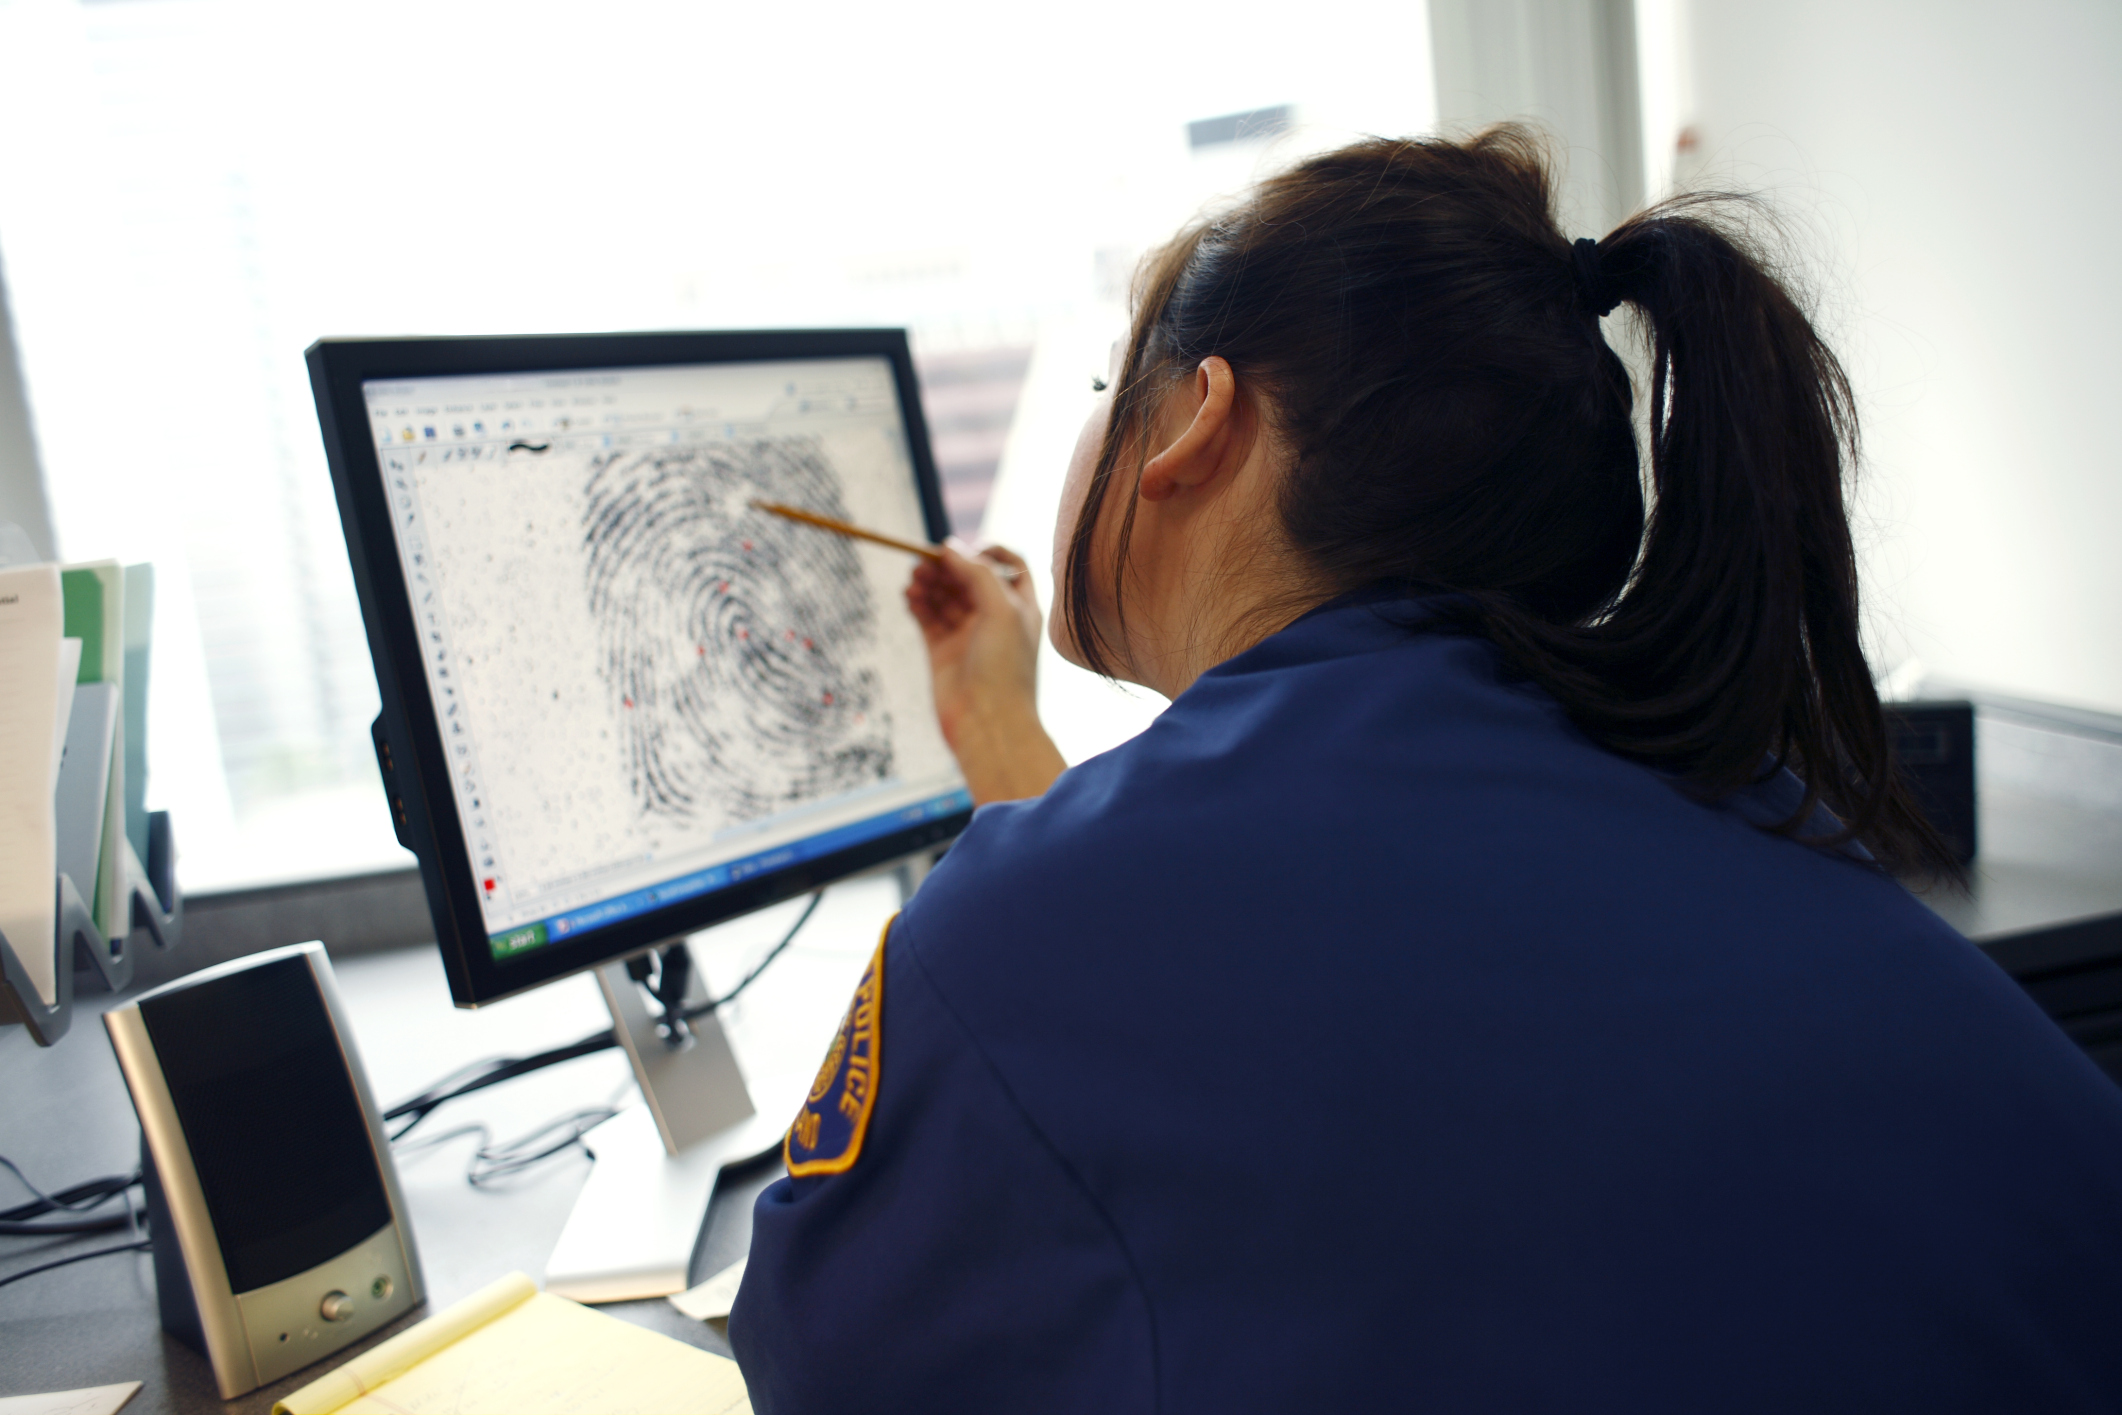 Cop at computer analyzing fingerprint